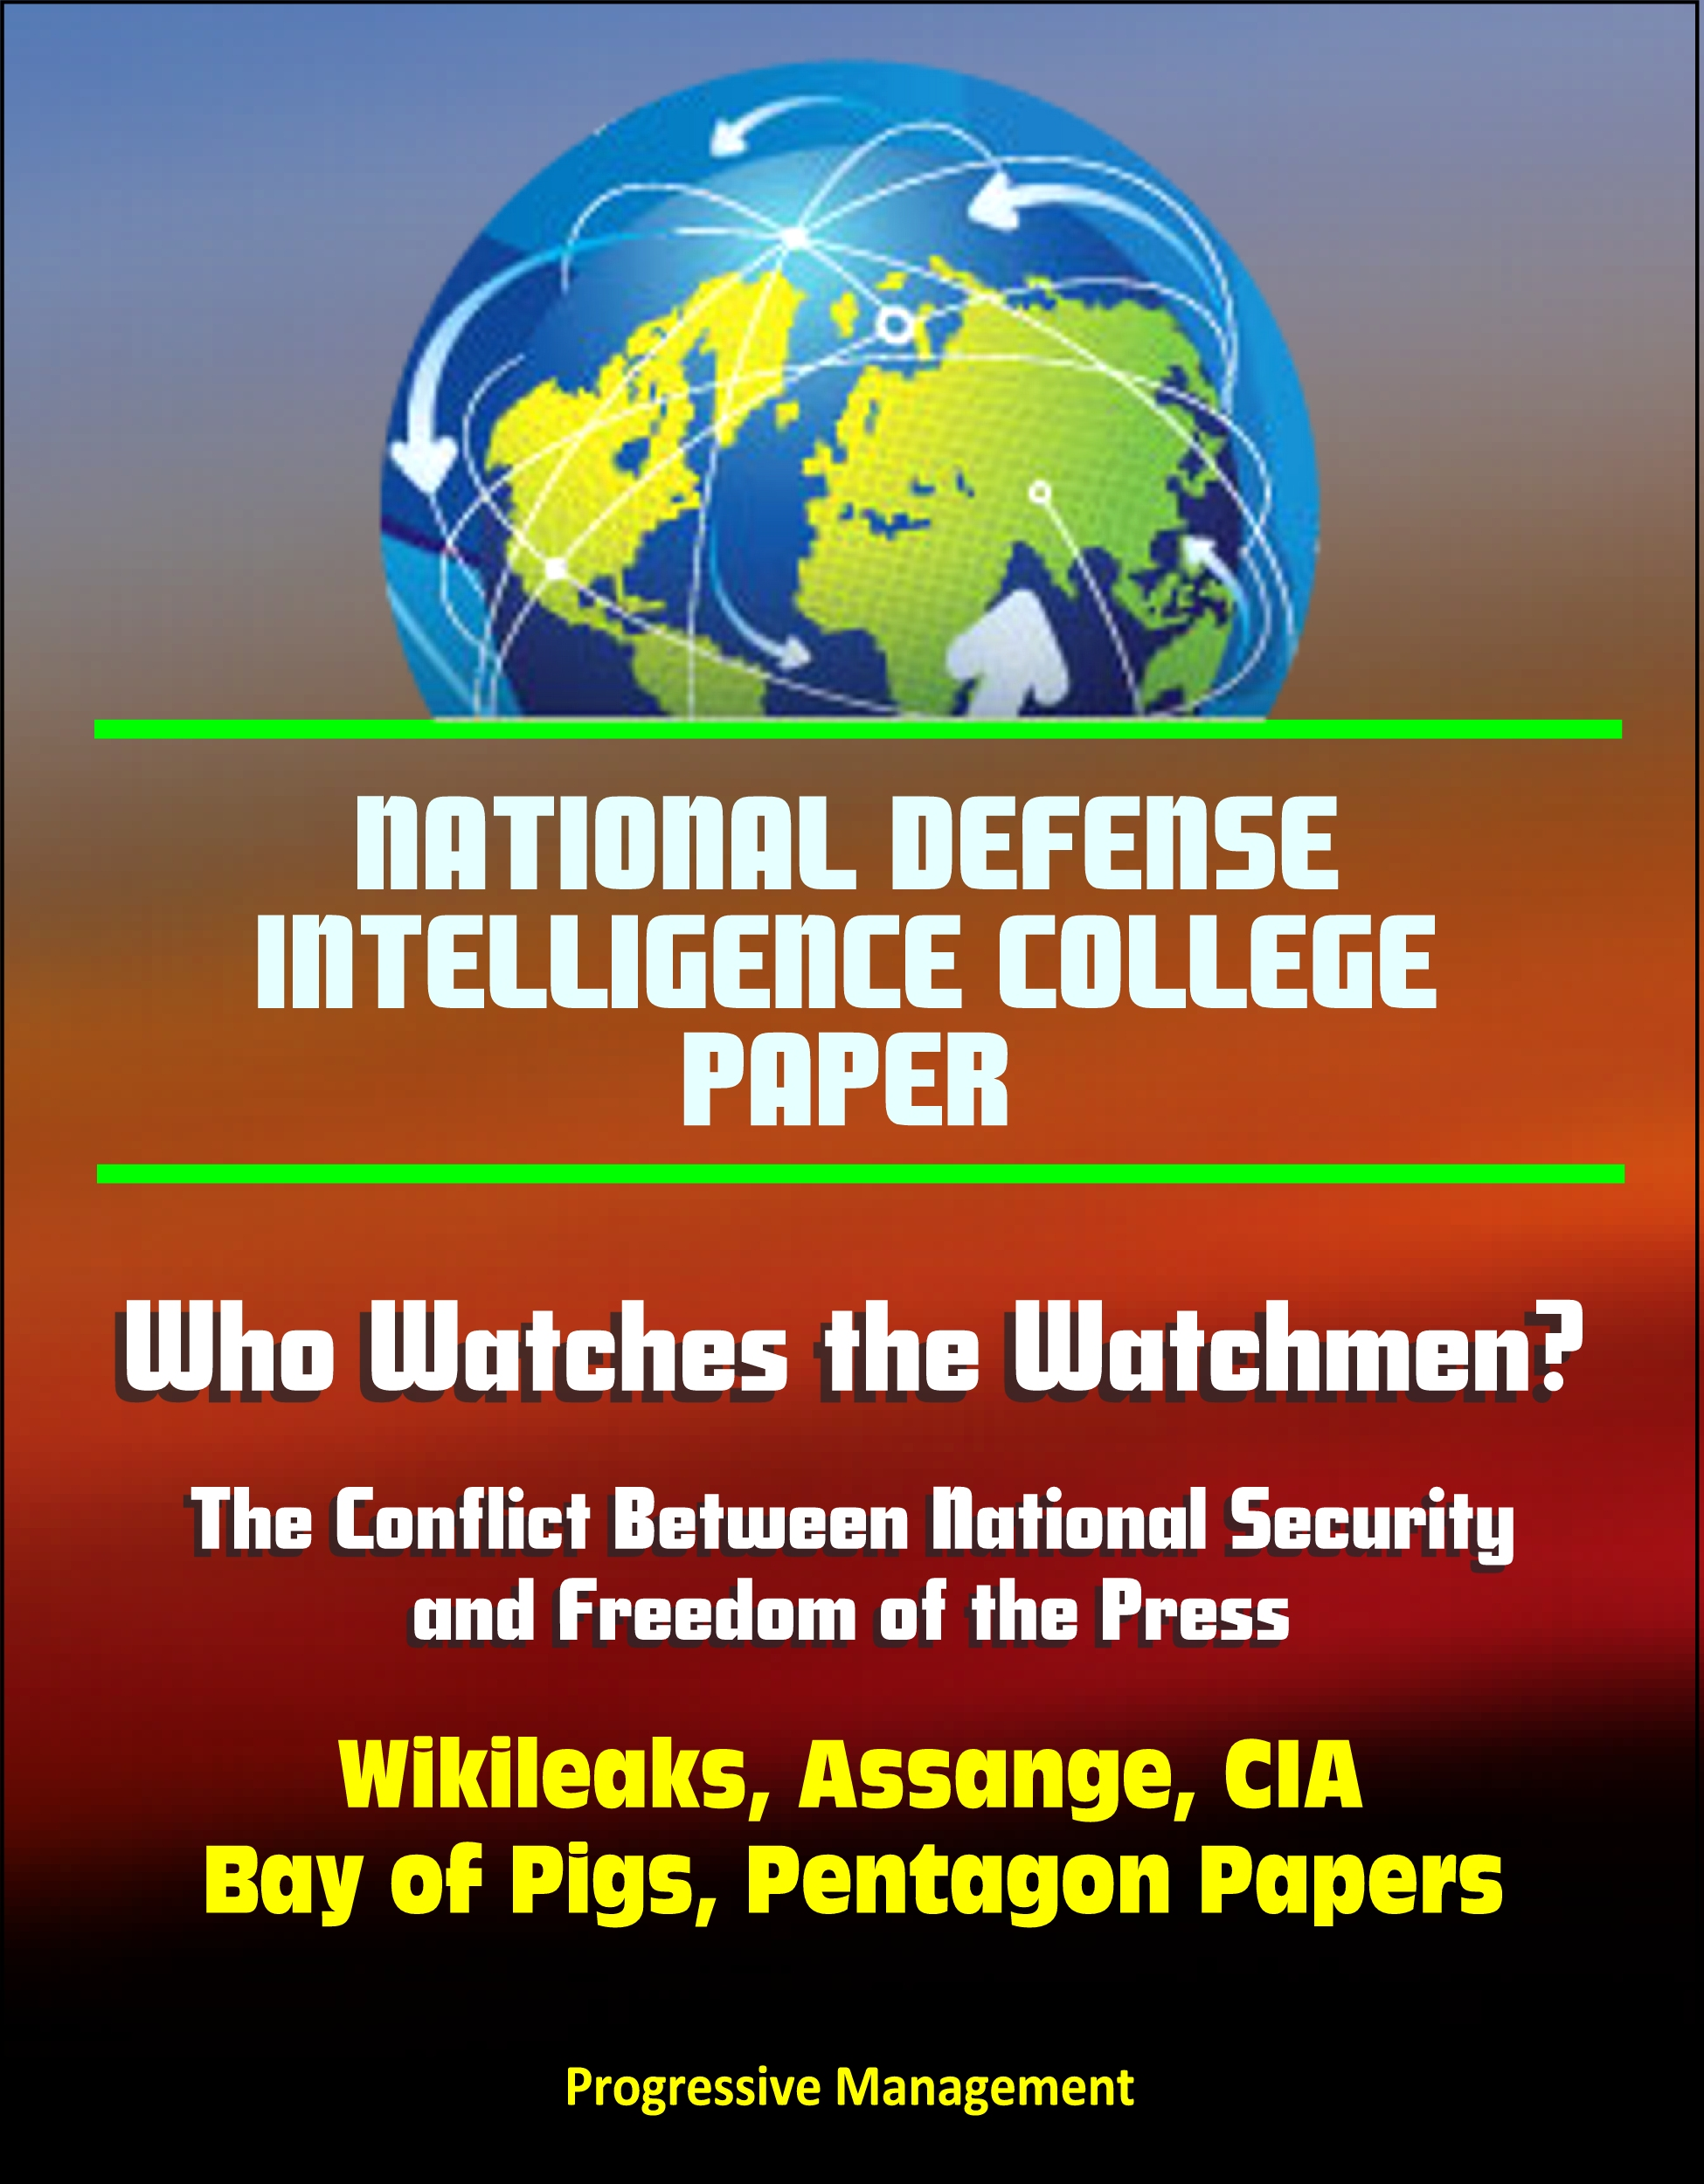 terrorism intelligence and national security 380 journal of national security law & policy [vol 3:377 preparation for an act of terror, the entire resources of the nypd must be available to conduct investigations into political activity and intelligence.